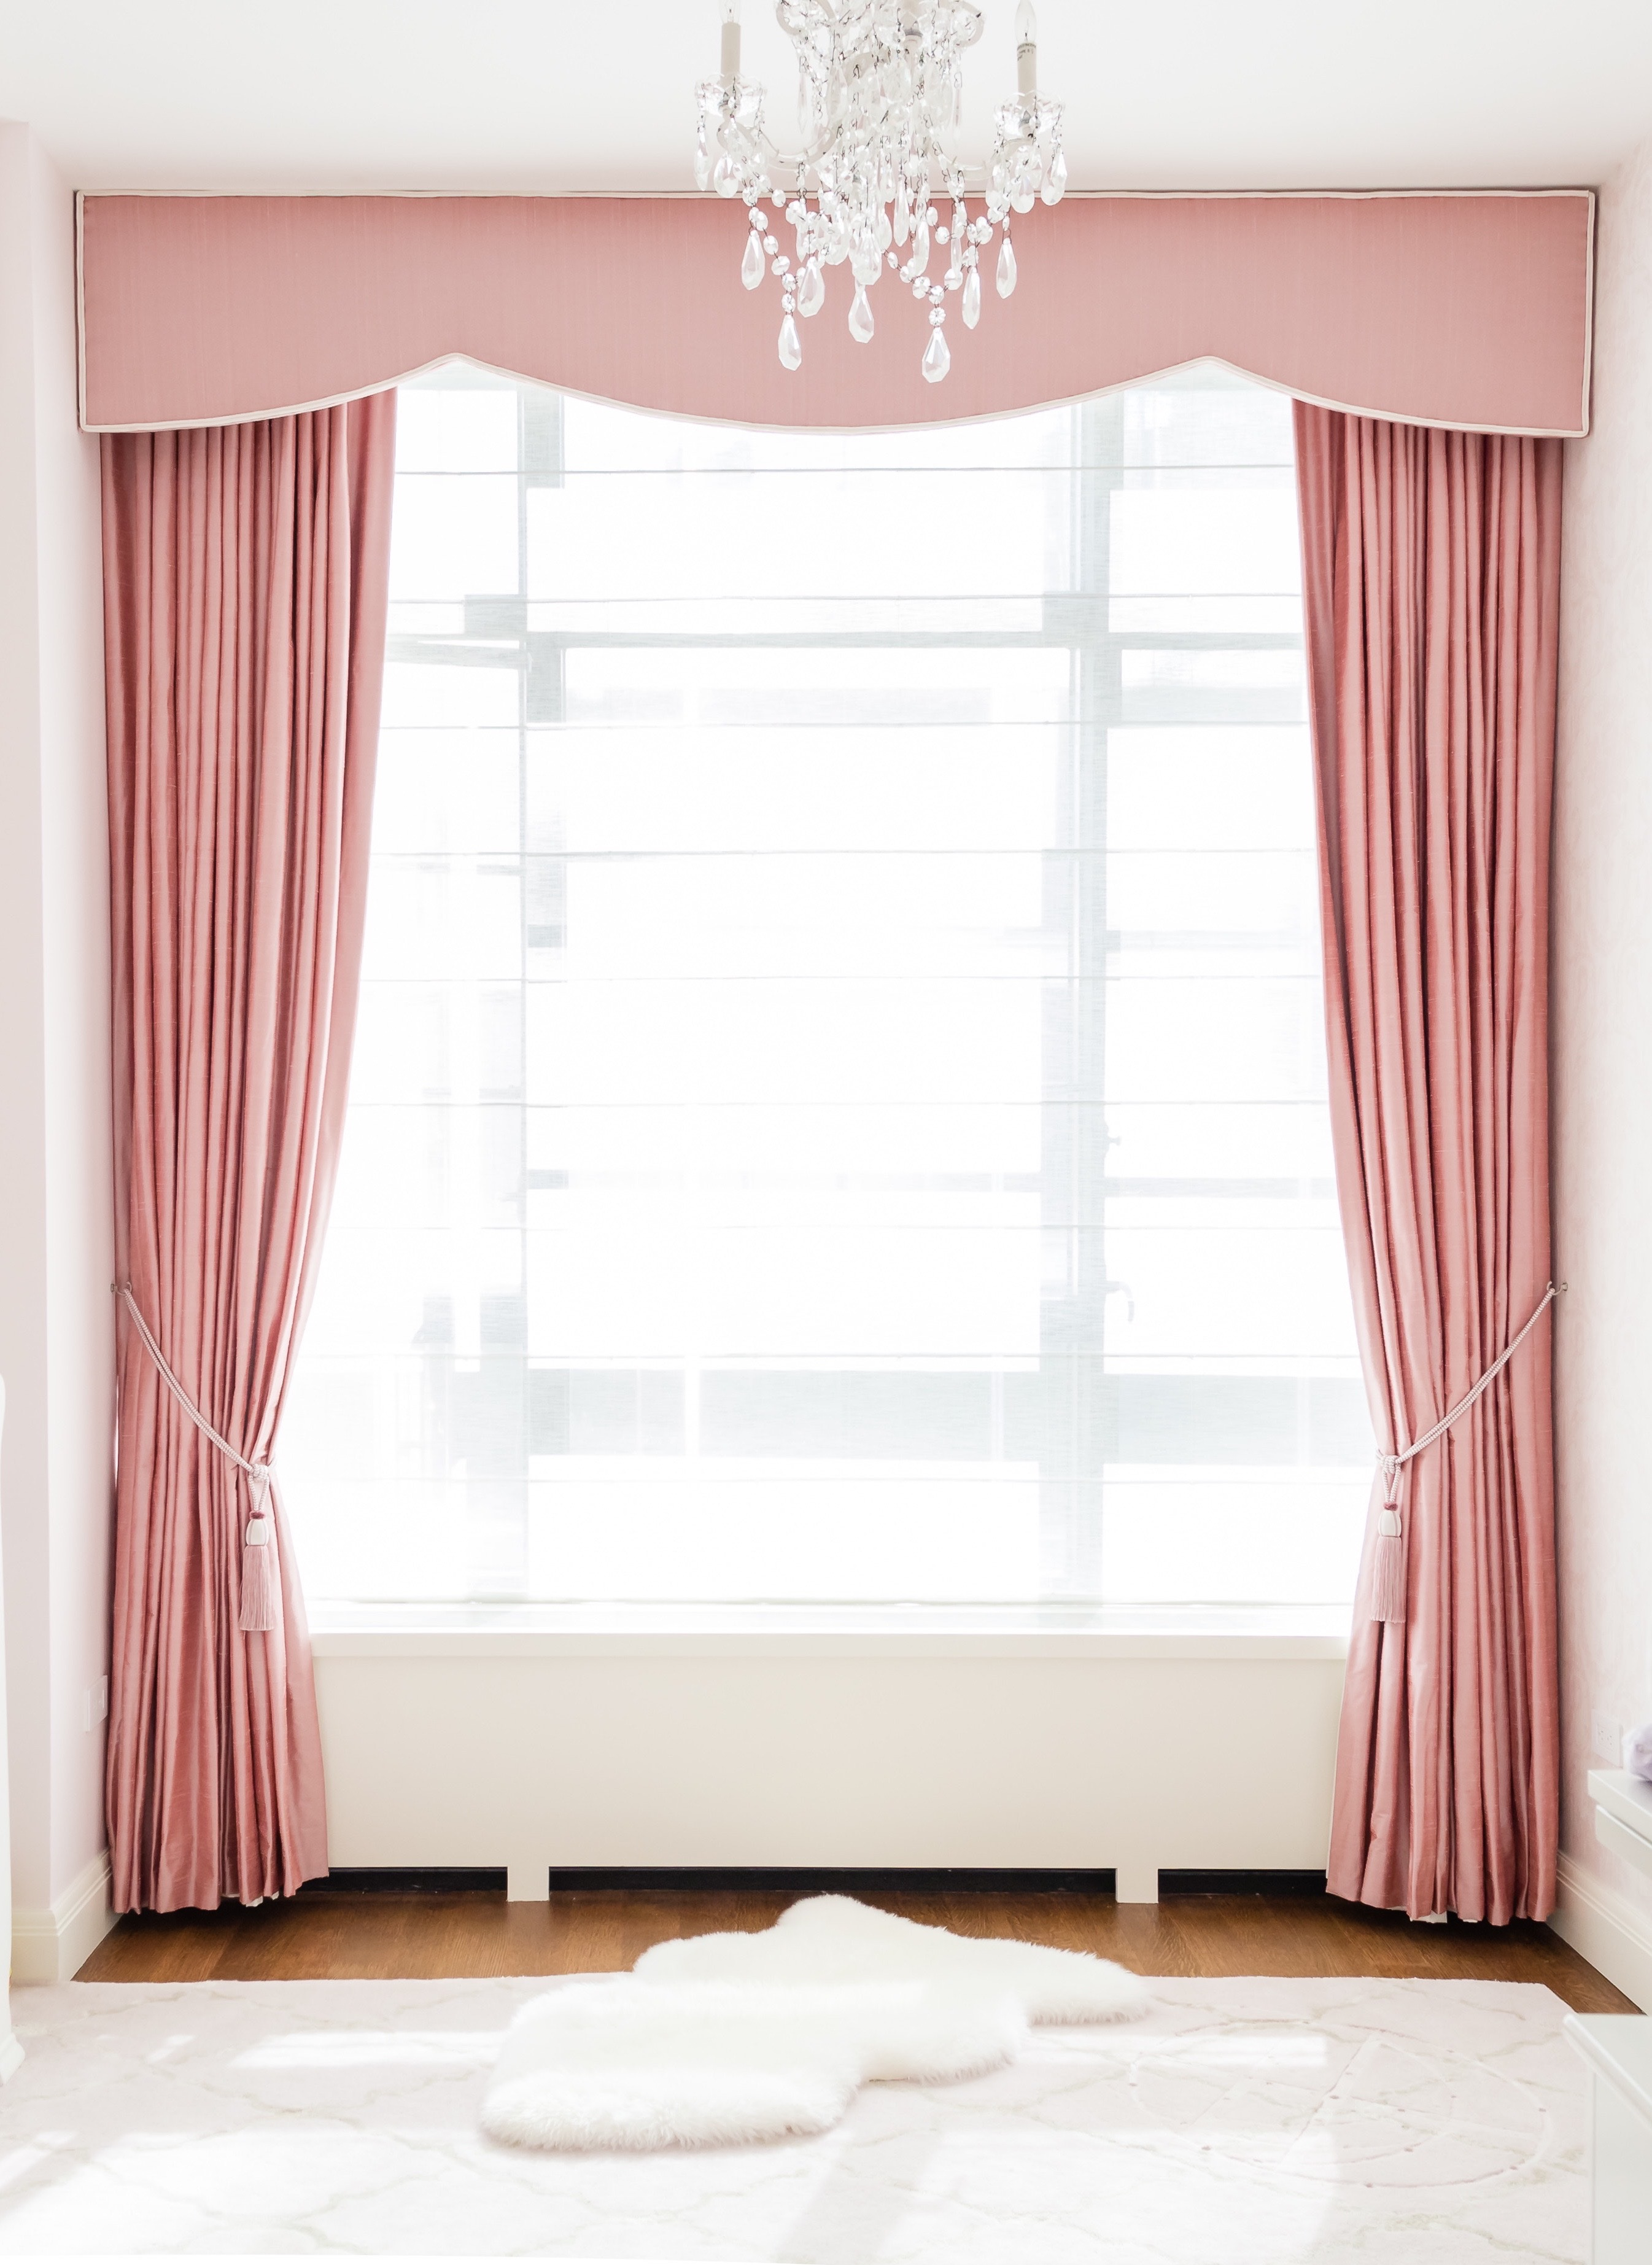 Window Treatments House of Style & Design